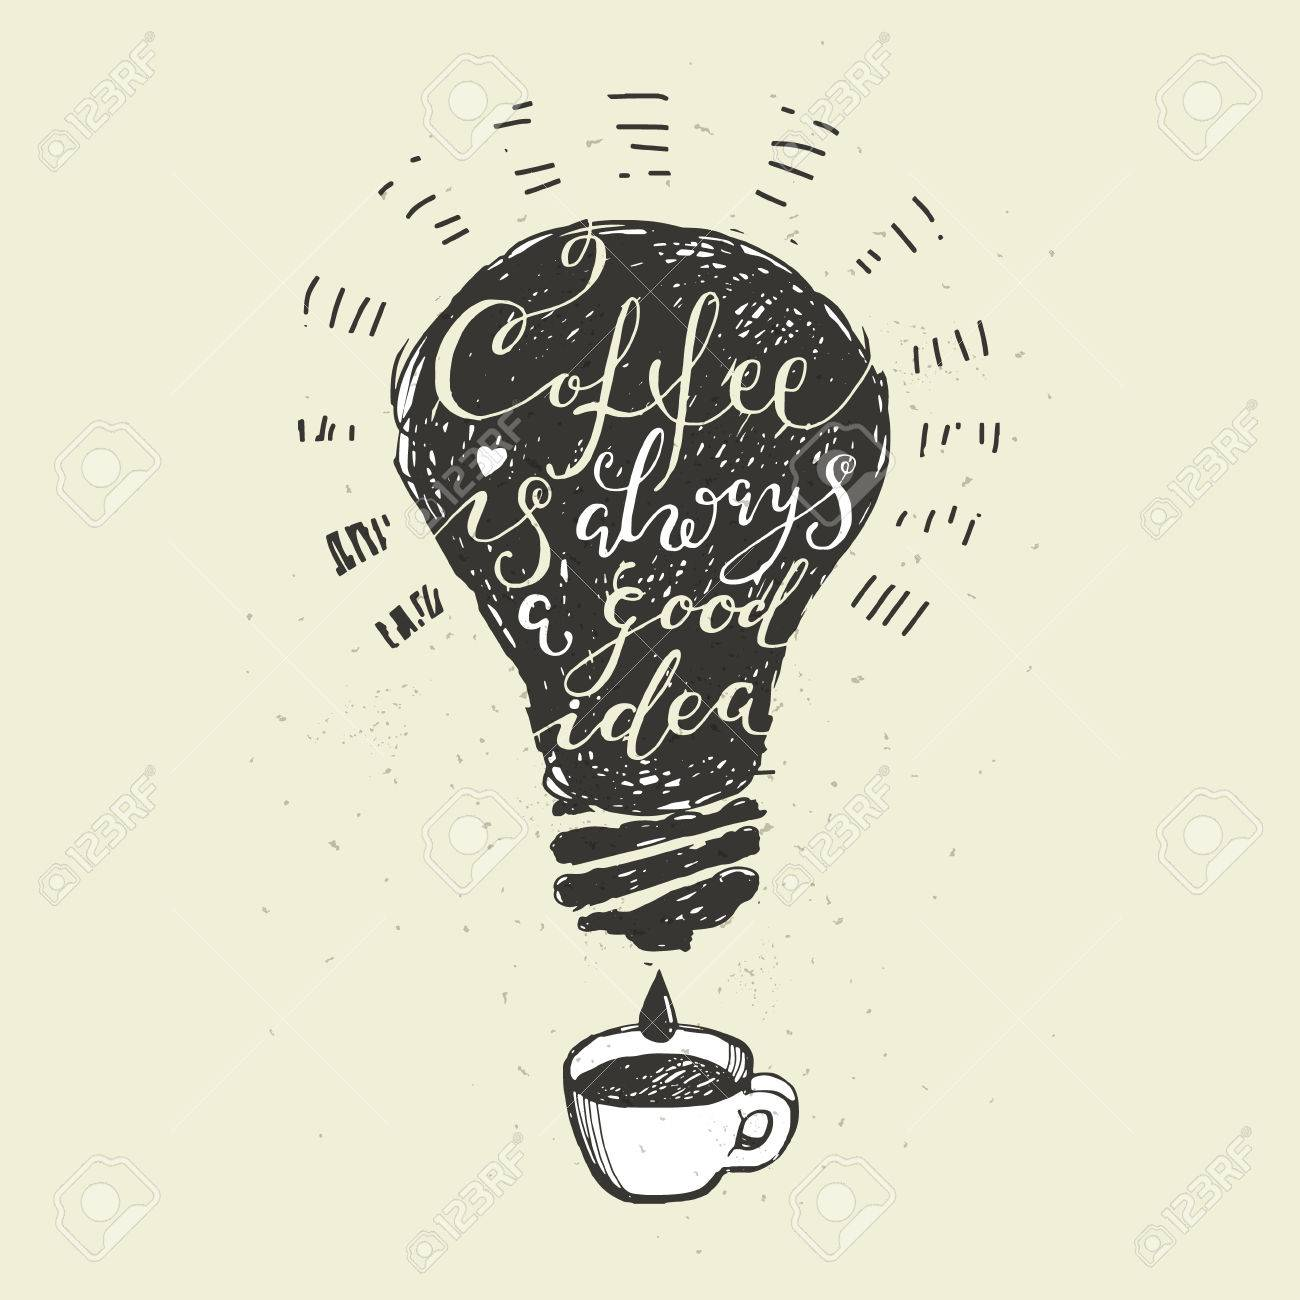 Citaten Koffie English : Coffee quotes. coffee is always a good idea lettering. hand drawn